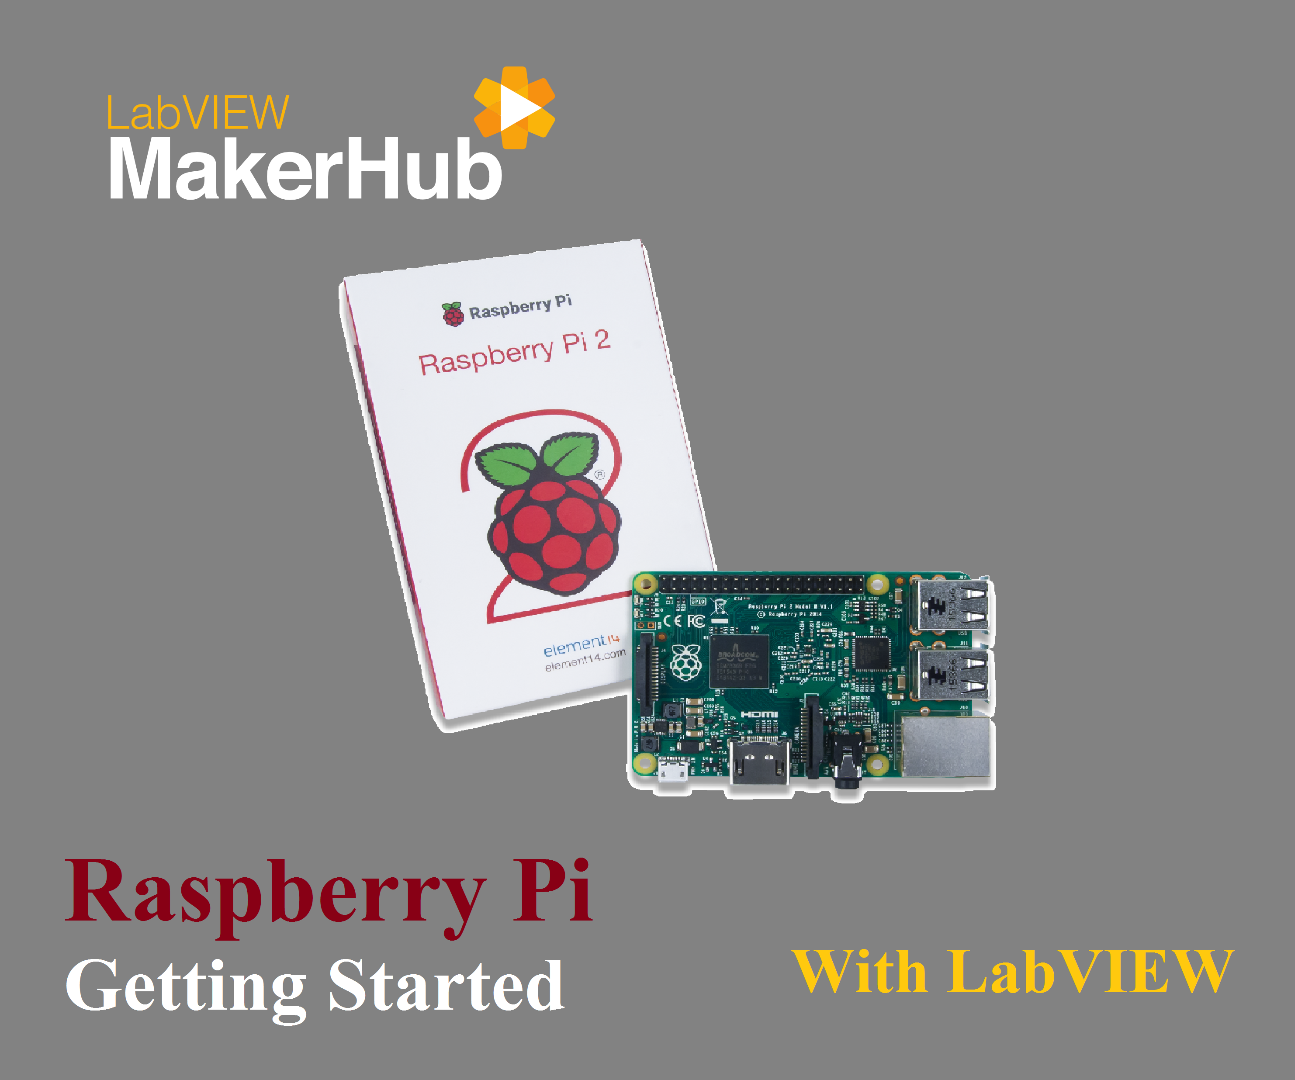 Getting Started With the Raspberry Pi 2 (LabVIEW): 9 Steps